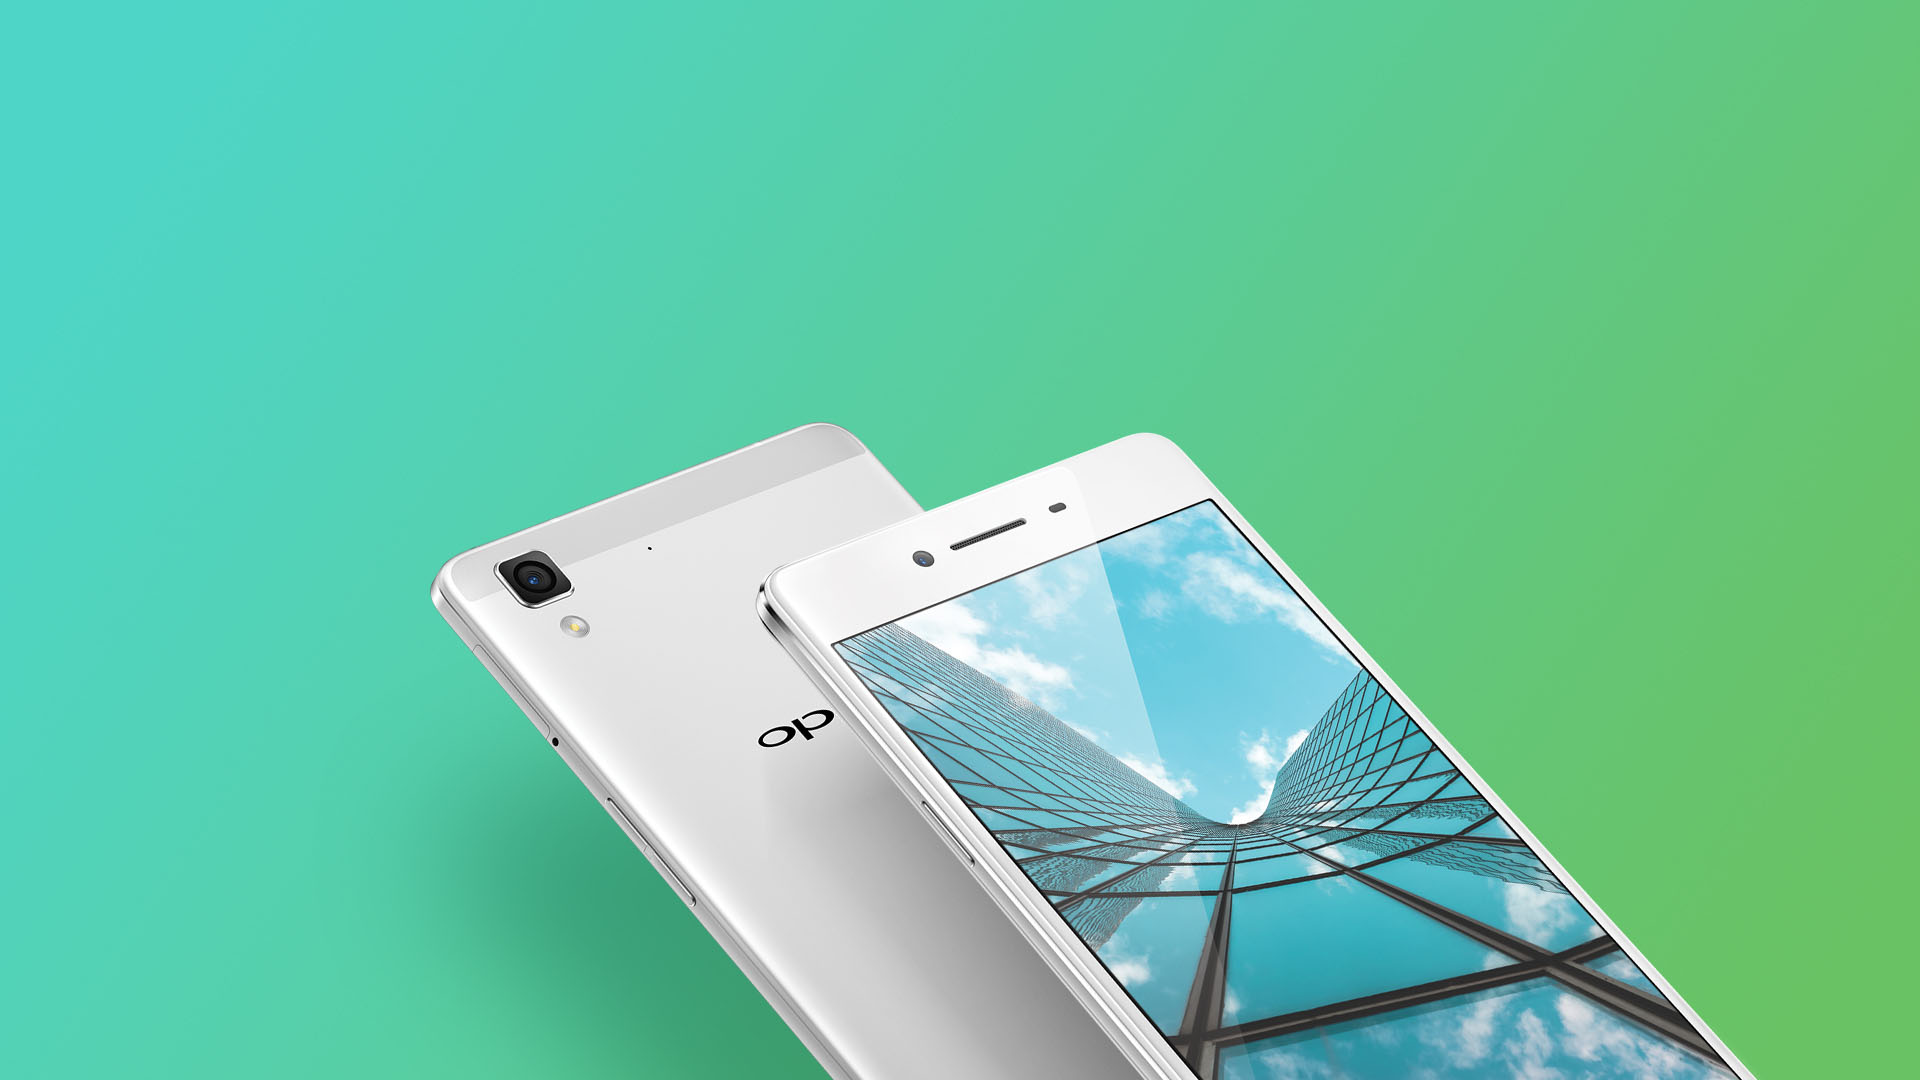 timeless design 0bd82 8e339 OPPO R7, PDAF, Dual SIM 4G, VOOC Flash Charge - OPPO Global